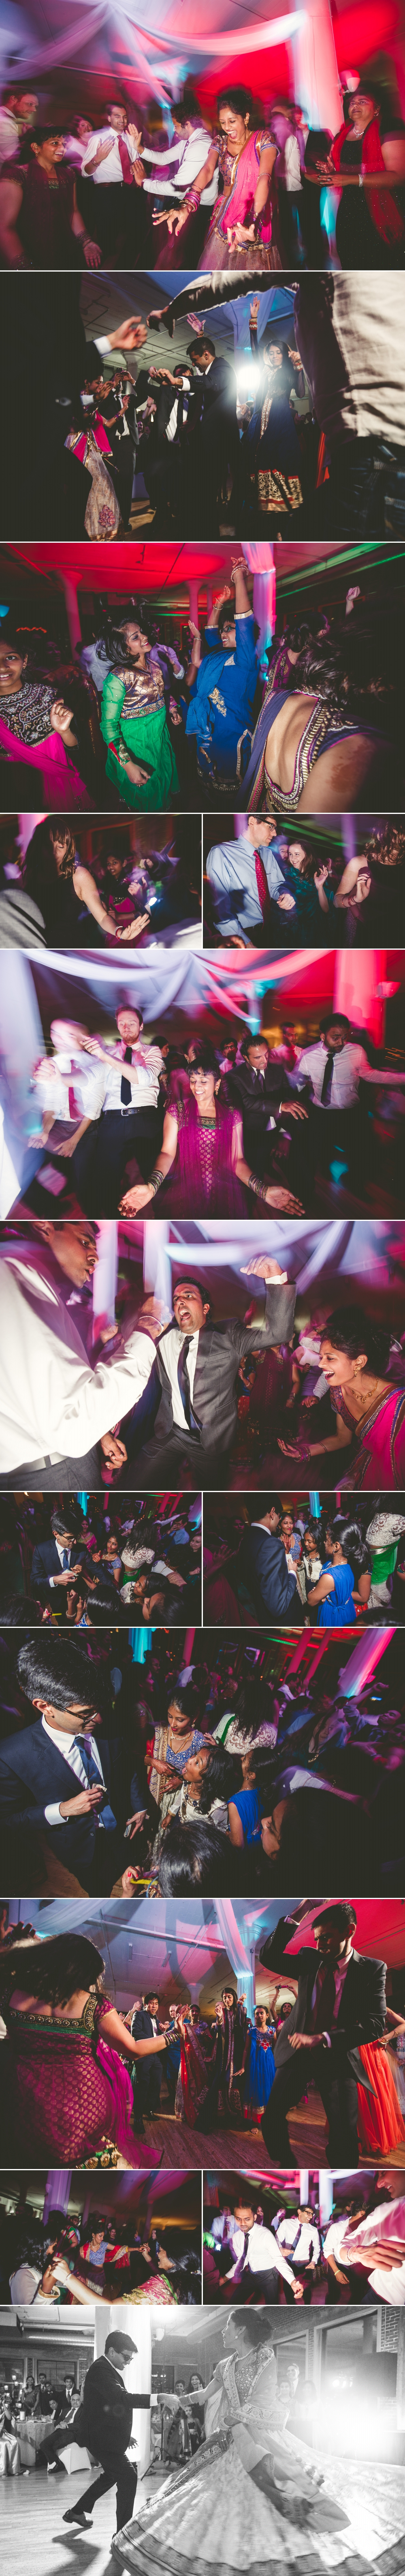 jason_domingues_photography_best_photographer_indian_wedding_st_louis_kansas_city_marriott_grand_8.jpg